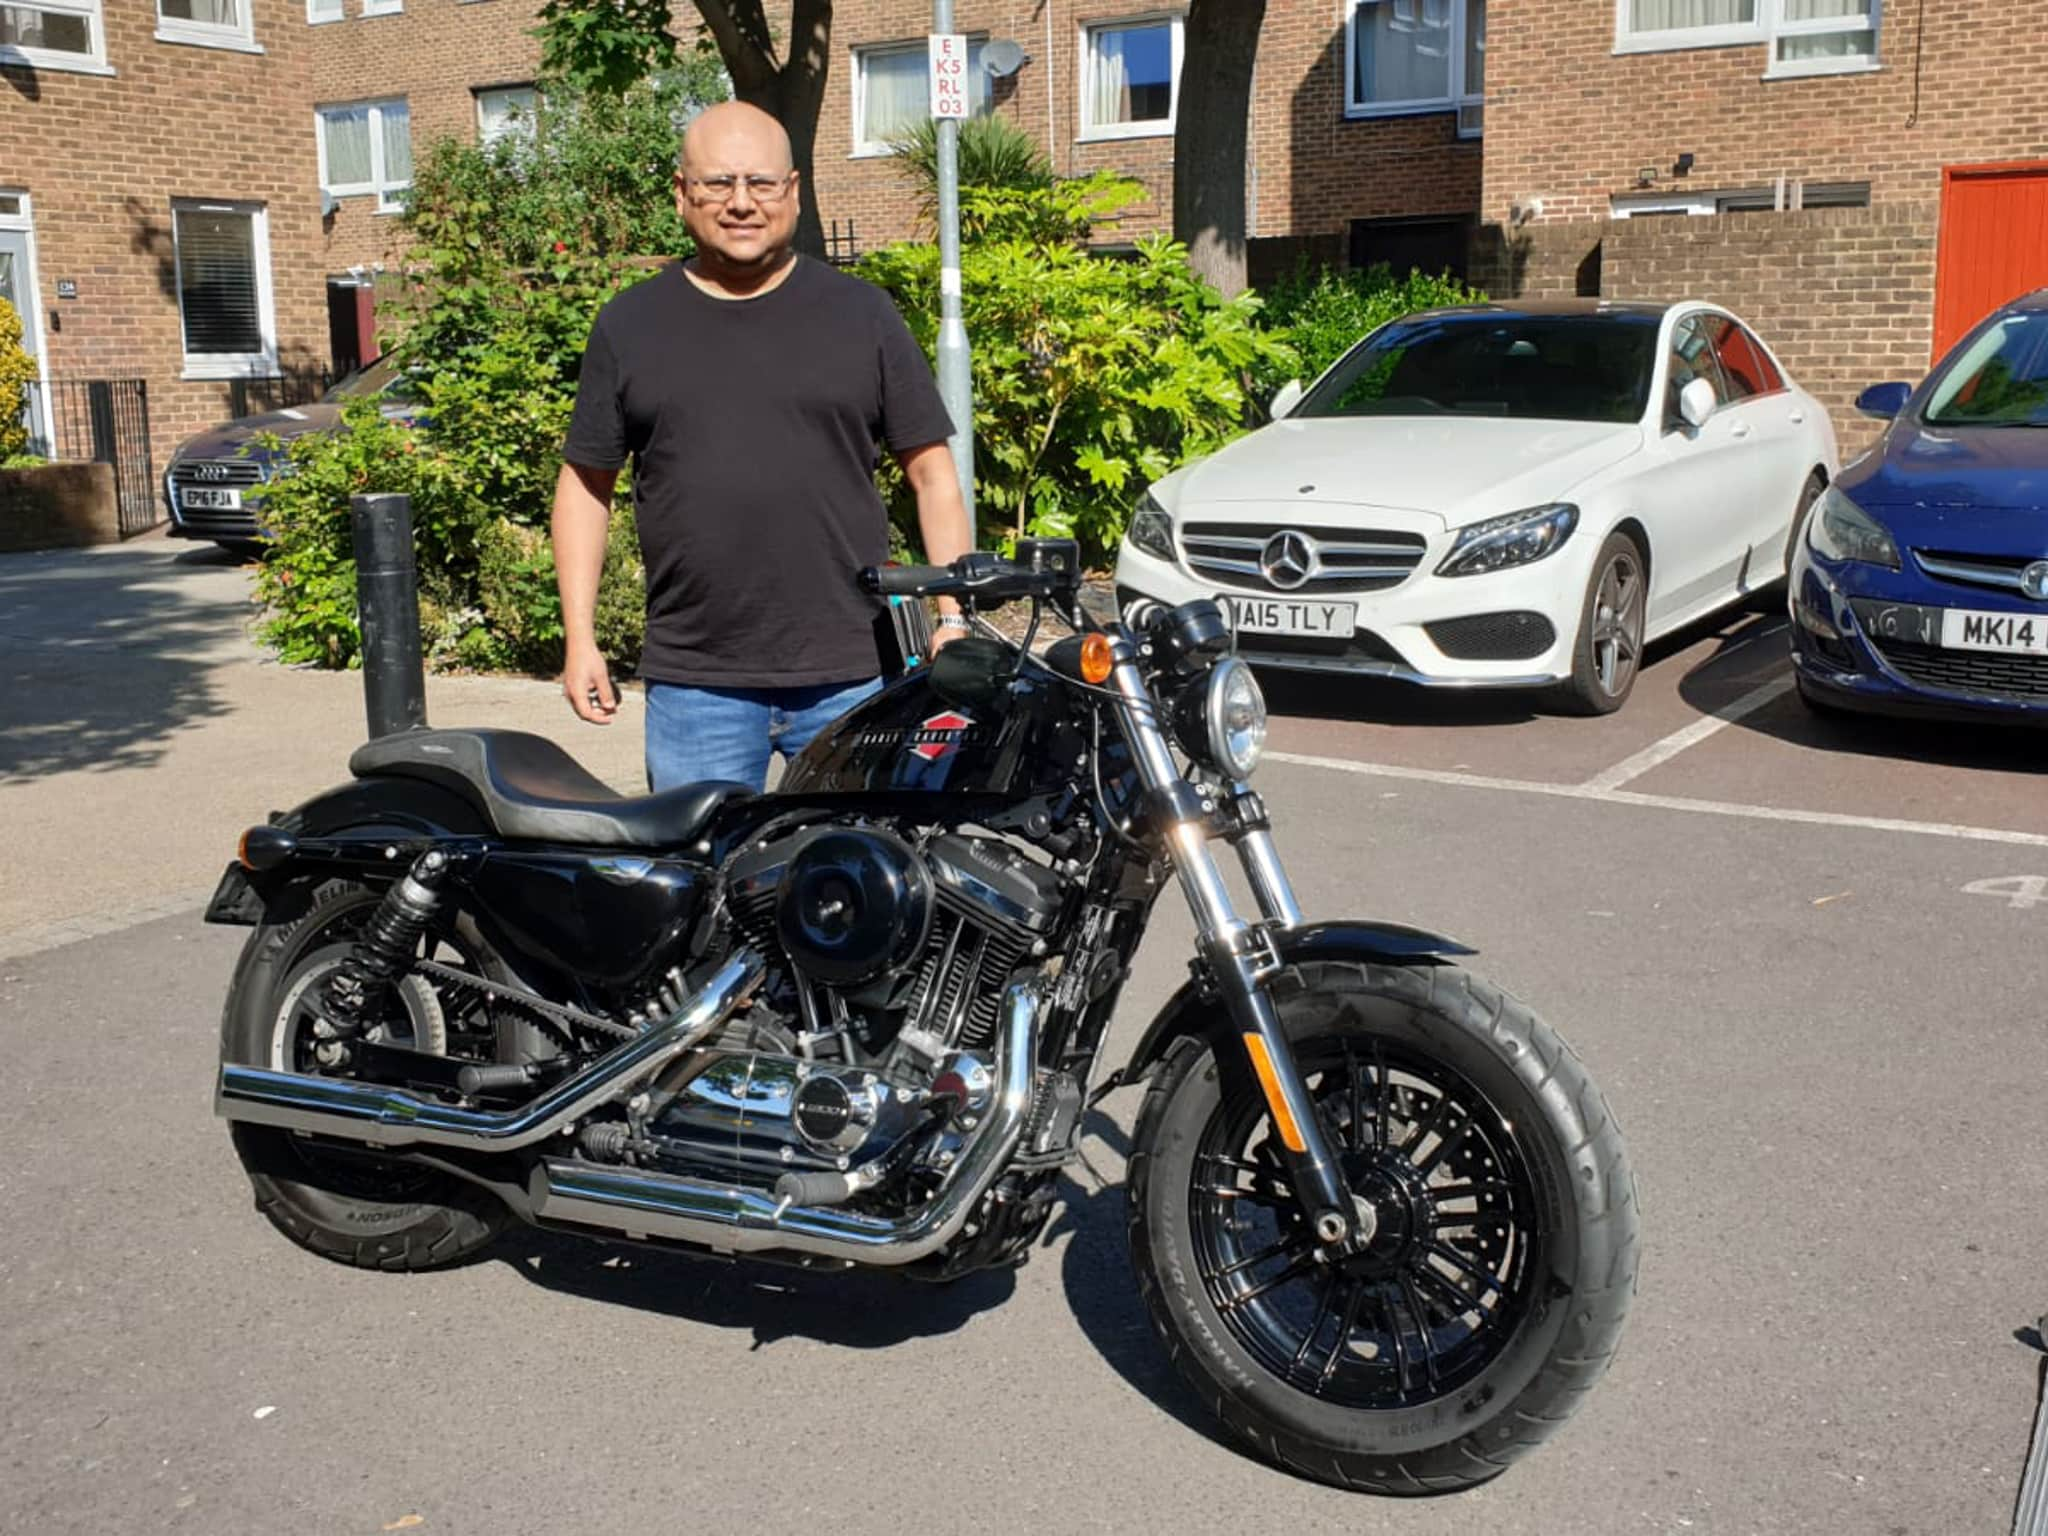 Winner Brian Dias of a Ukbikergirl's – 2019 - Harley Davidson Sportster 1200 Forty Eight!- 31st May